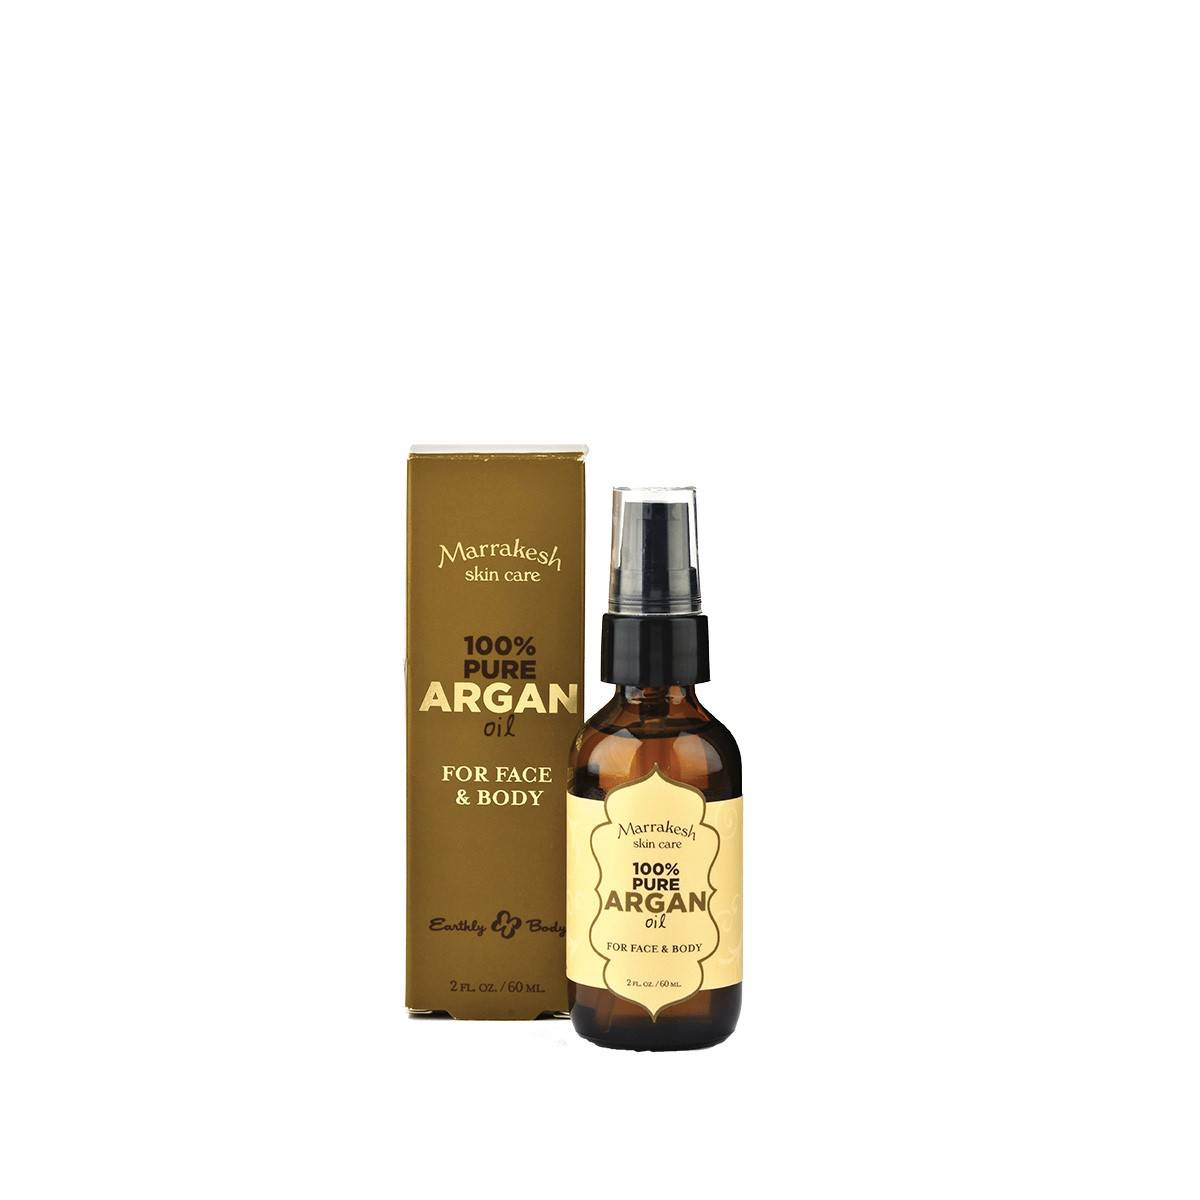 Pure Argan Oil 100% Face & Body 60ml